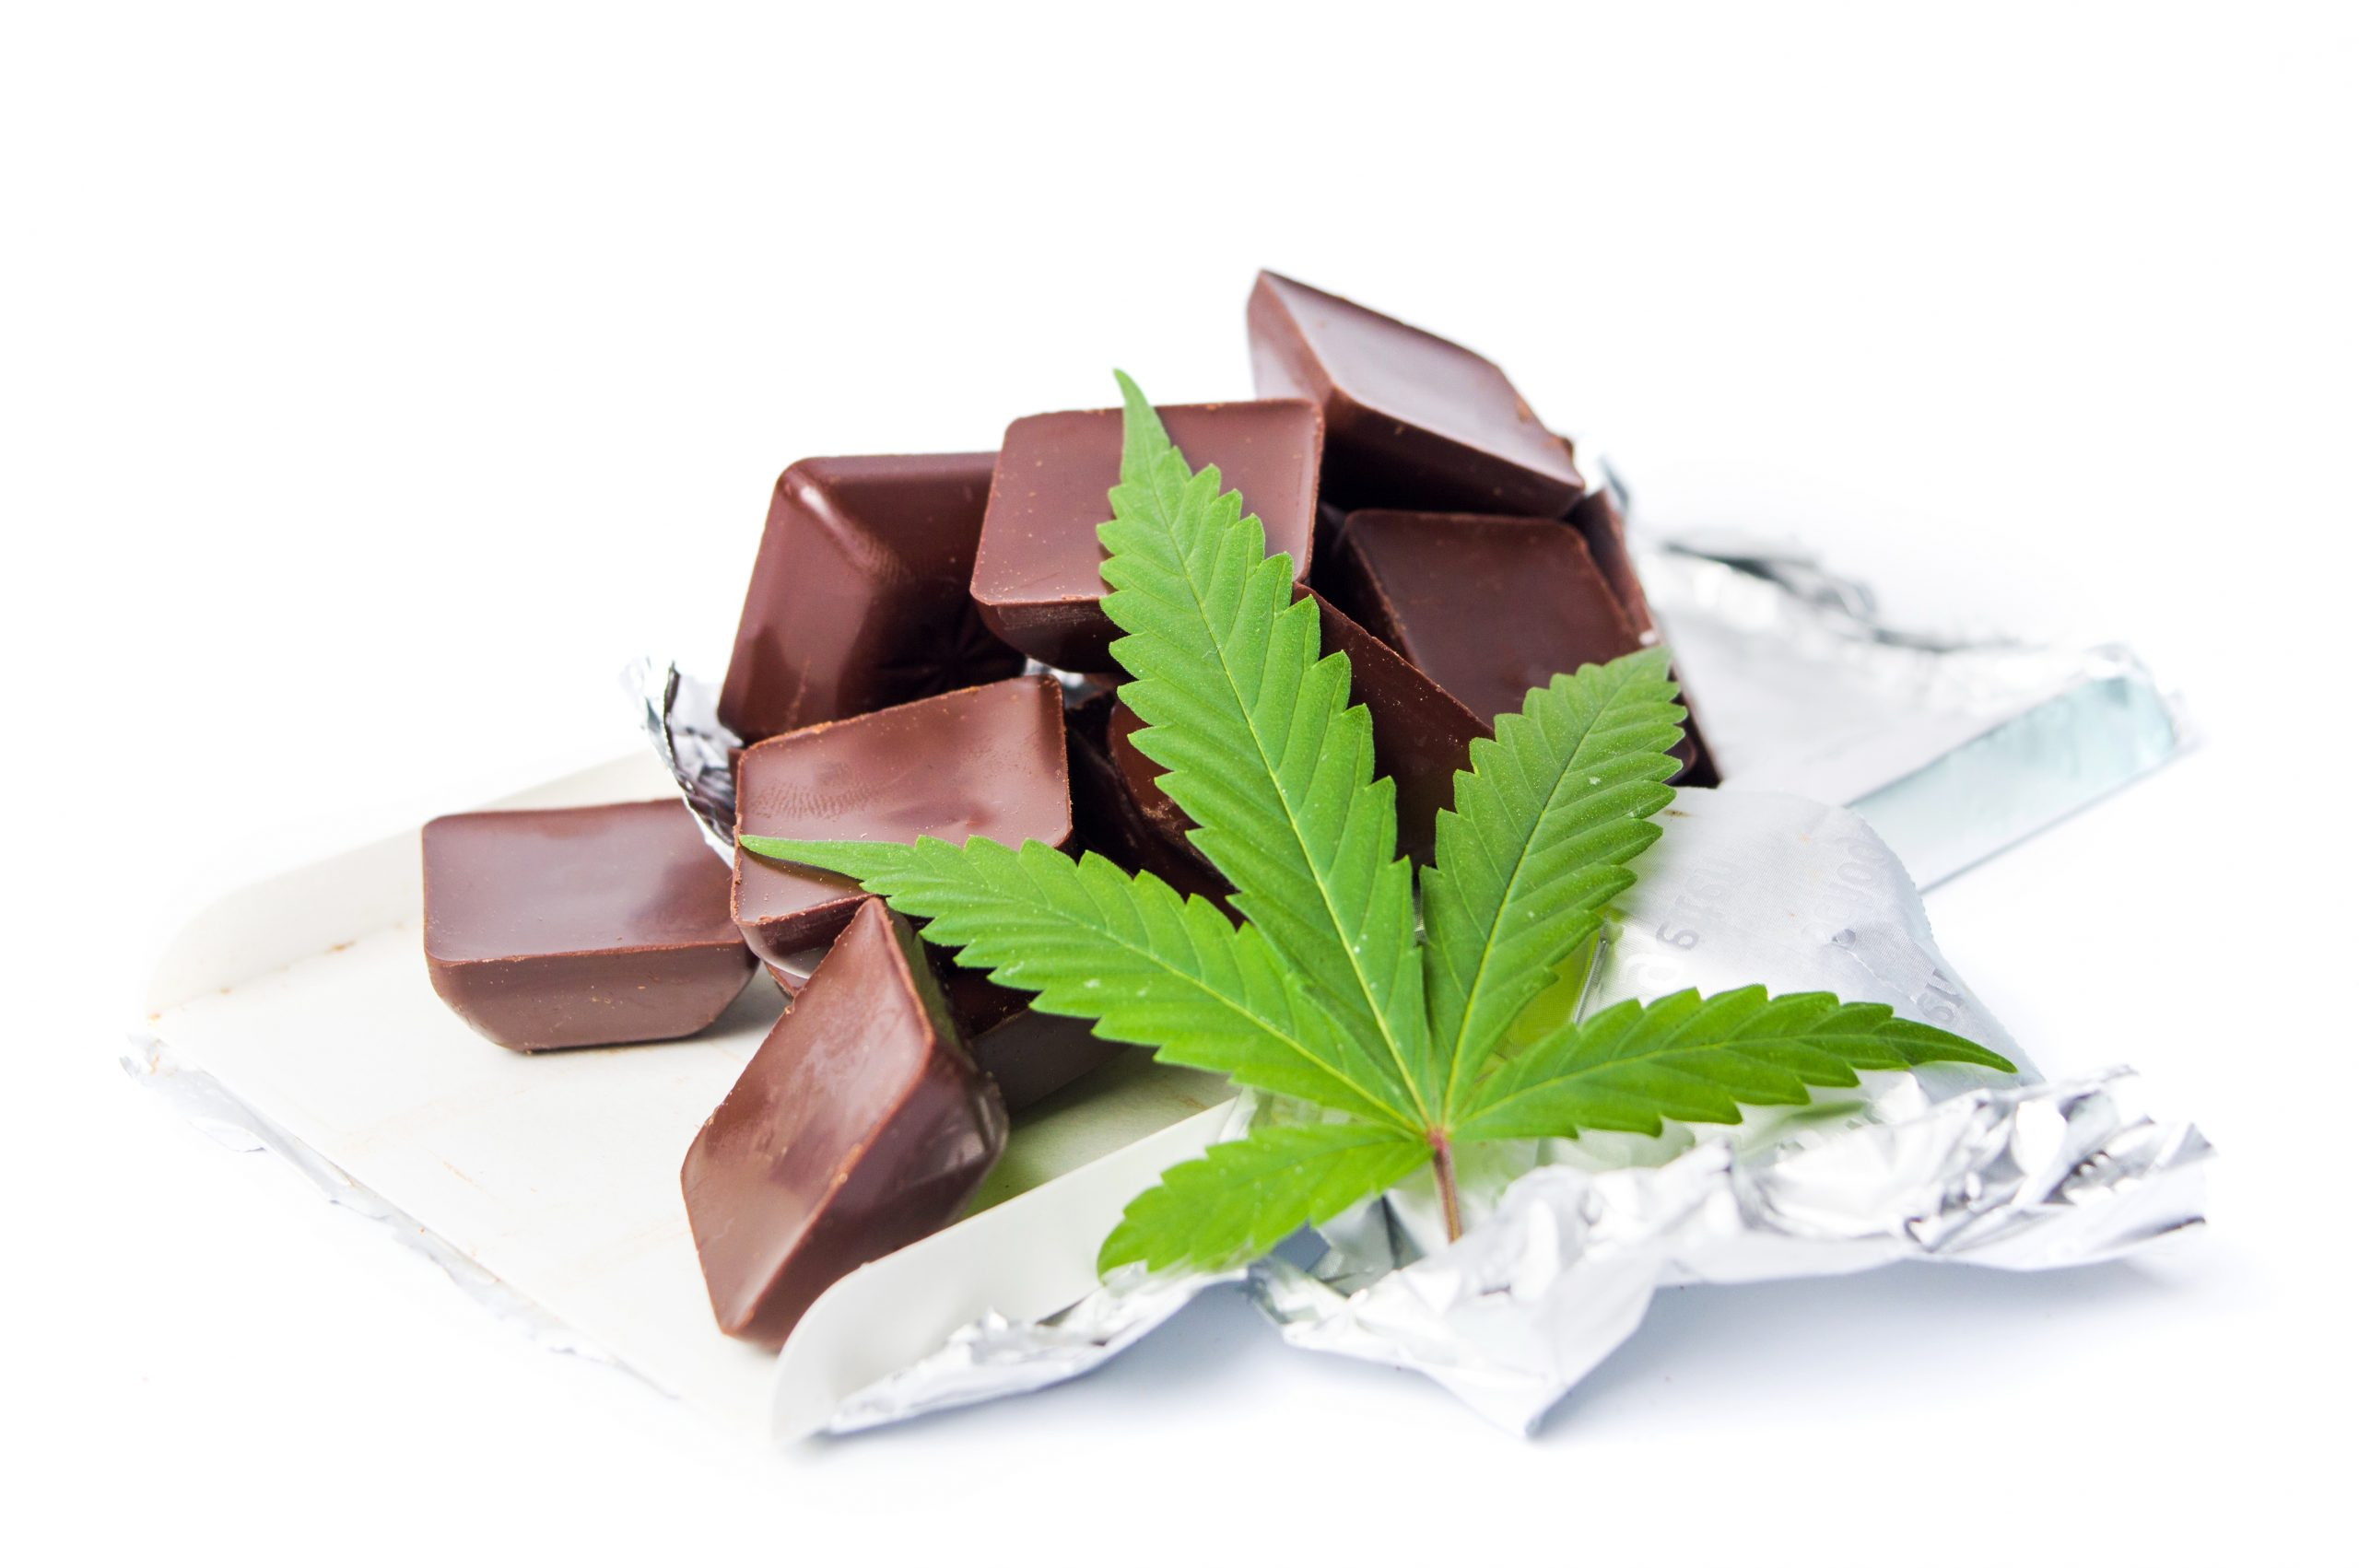 Cannabis edibles chocolate and marijuana leaf